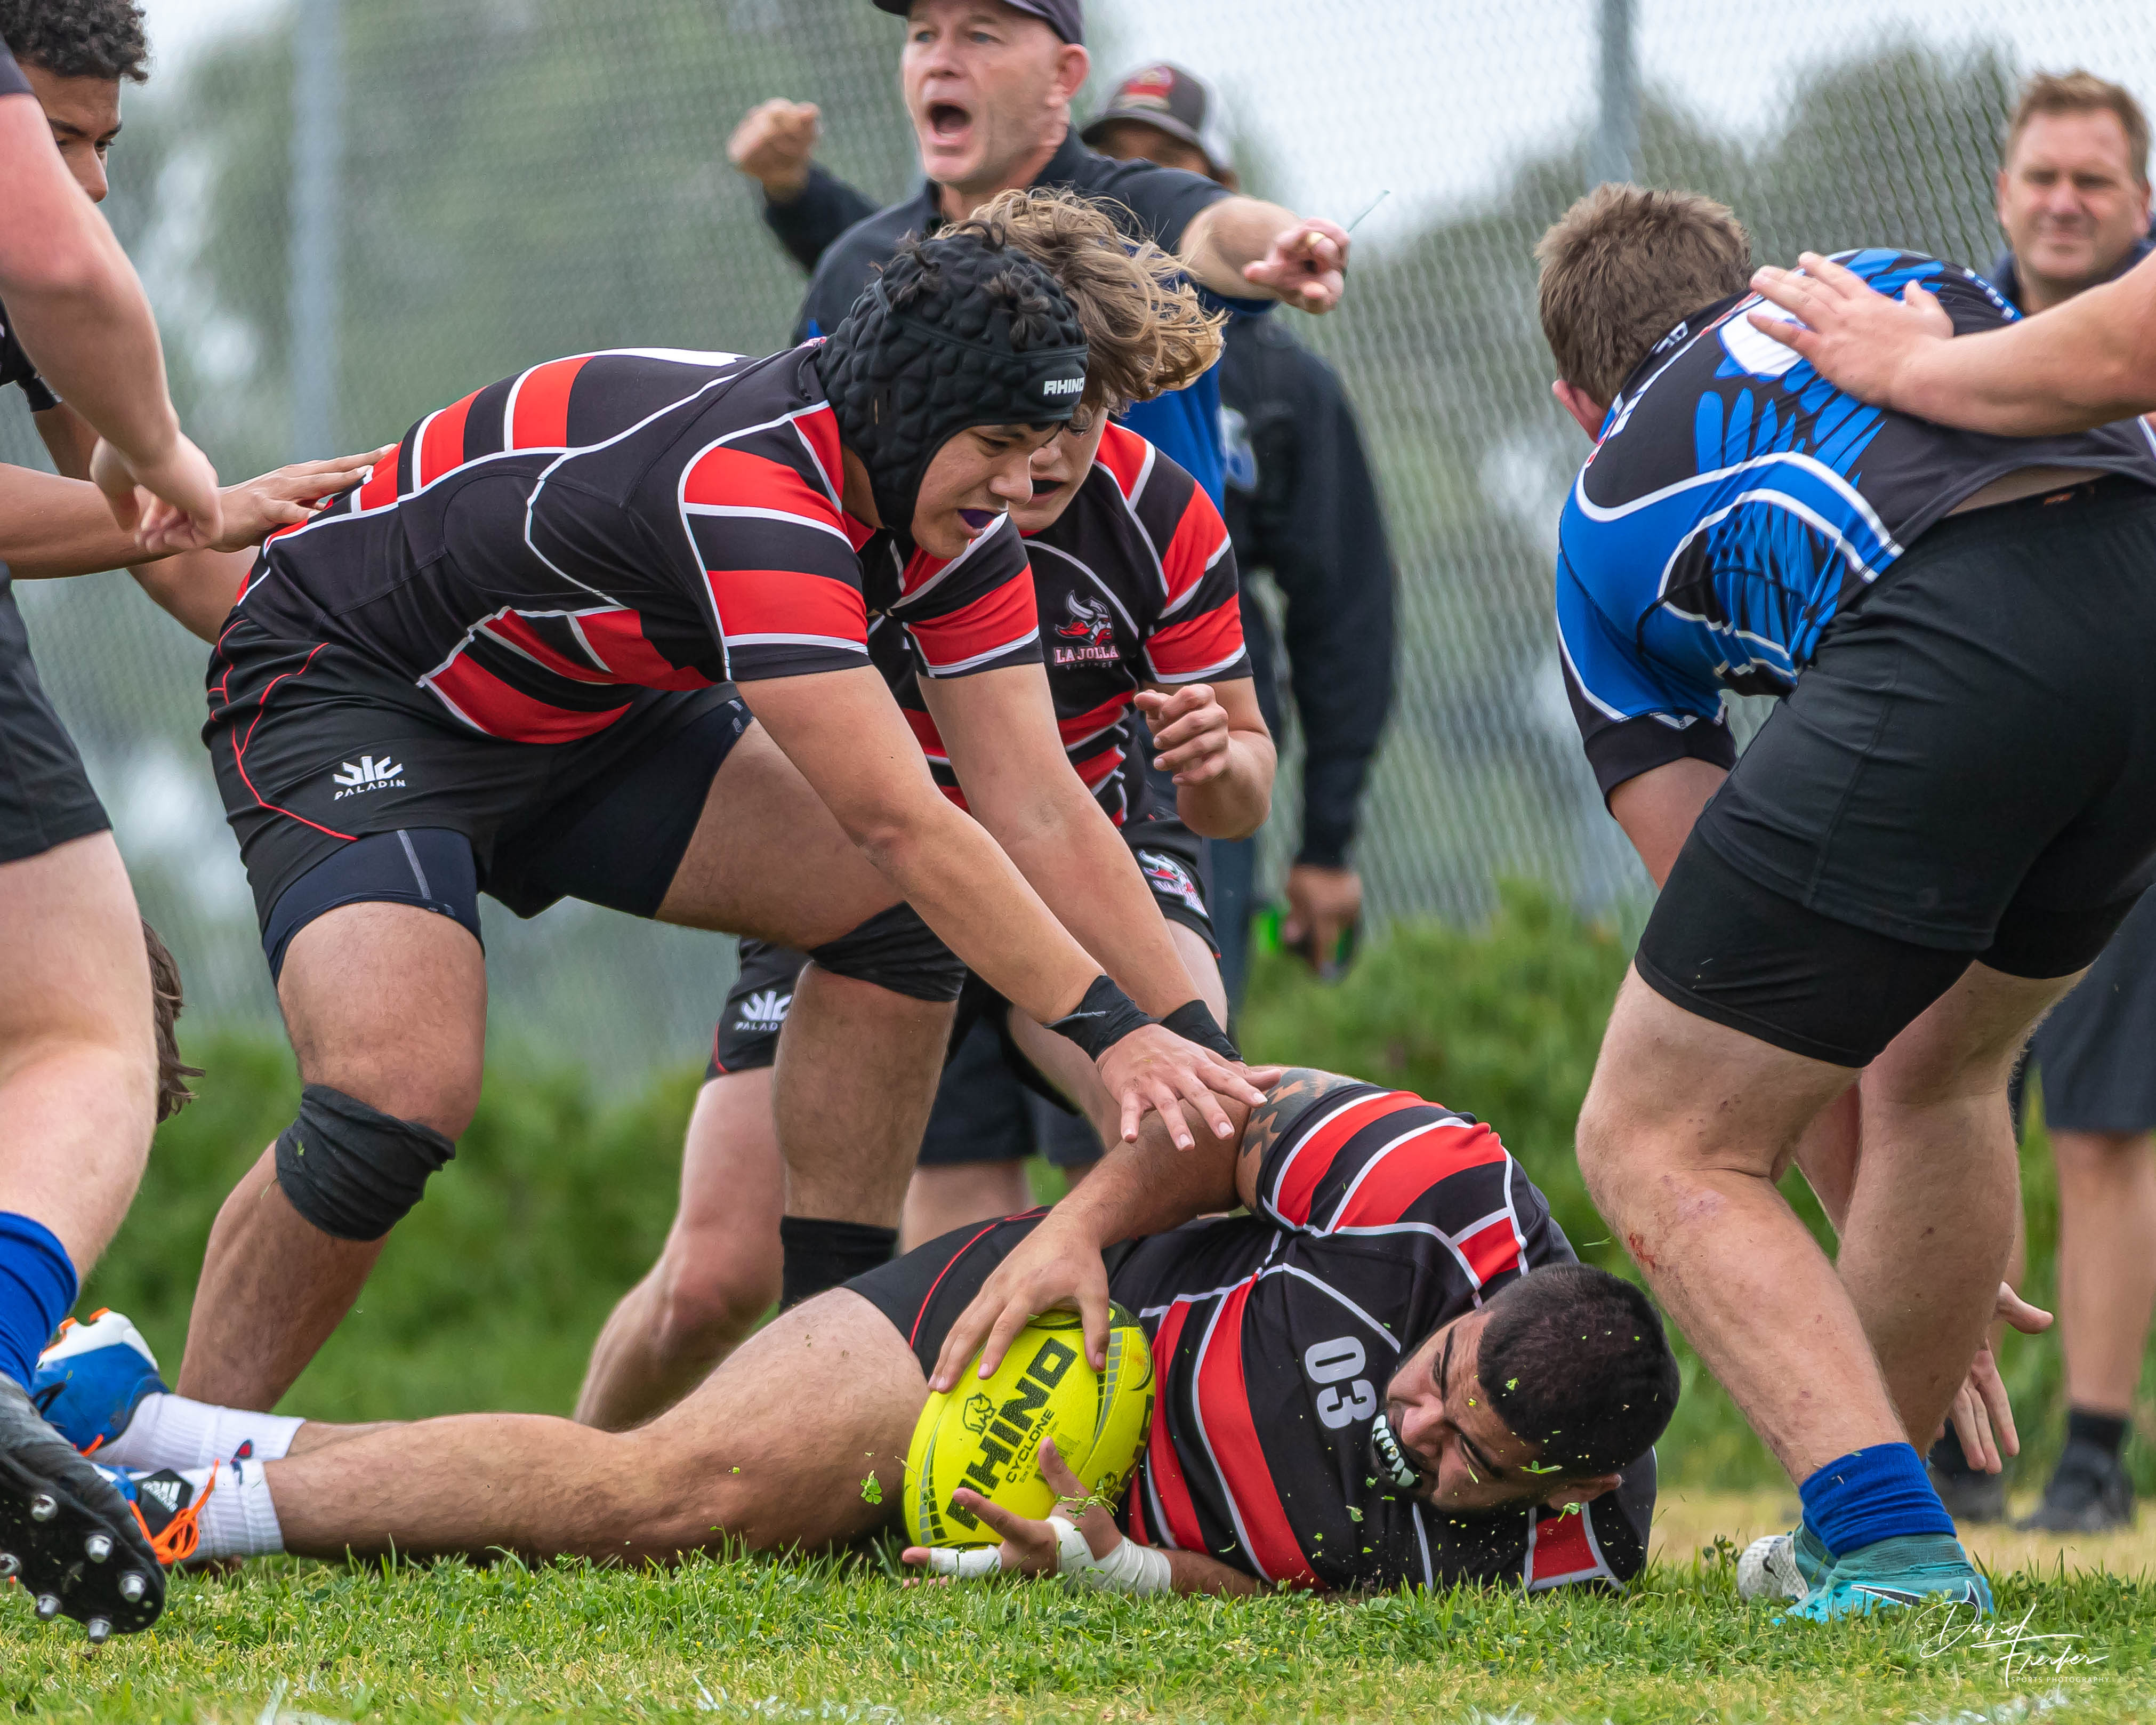 LaJollaRugby19